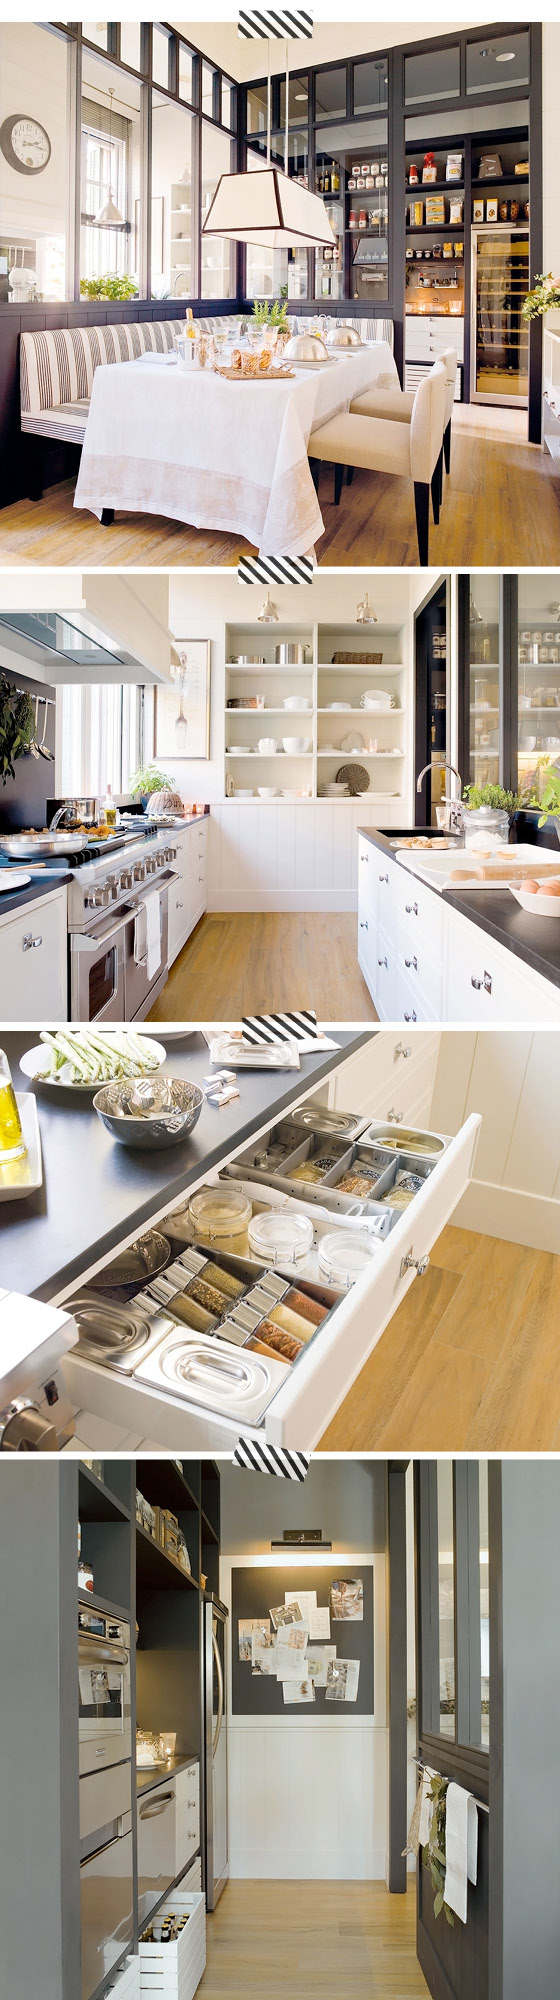 organized kitchen - interior design